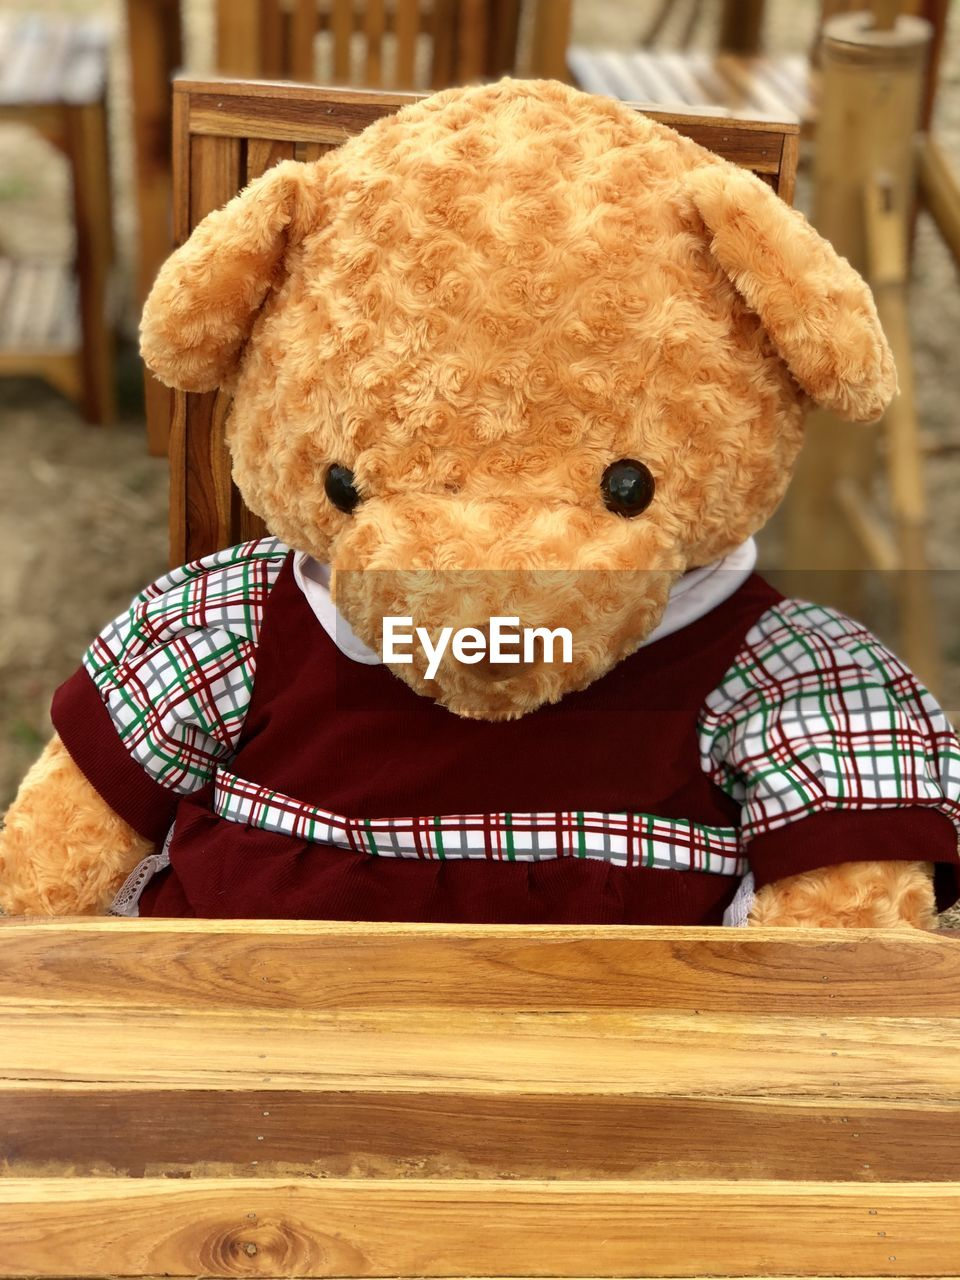 indoors, animal representation, stuffed toy, mammal, teddy bear, close-up, no people, toy, representation, table, animal themes, brown, animal, focus on foreground, checked pattern, still life, domestic animals, art and craft, wood - material, softness